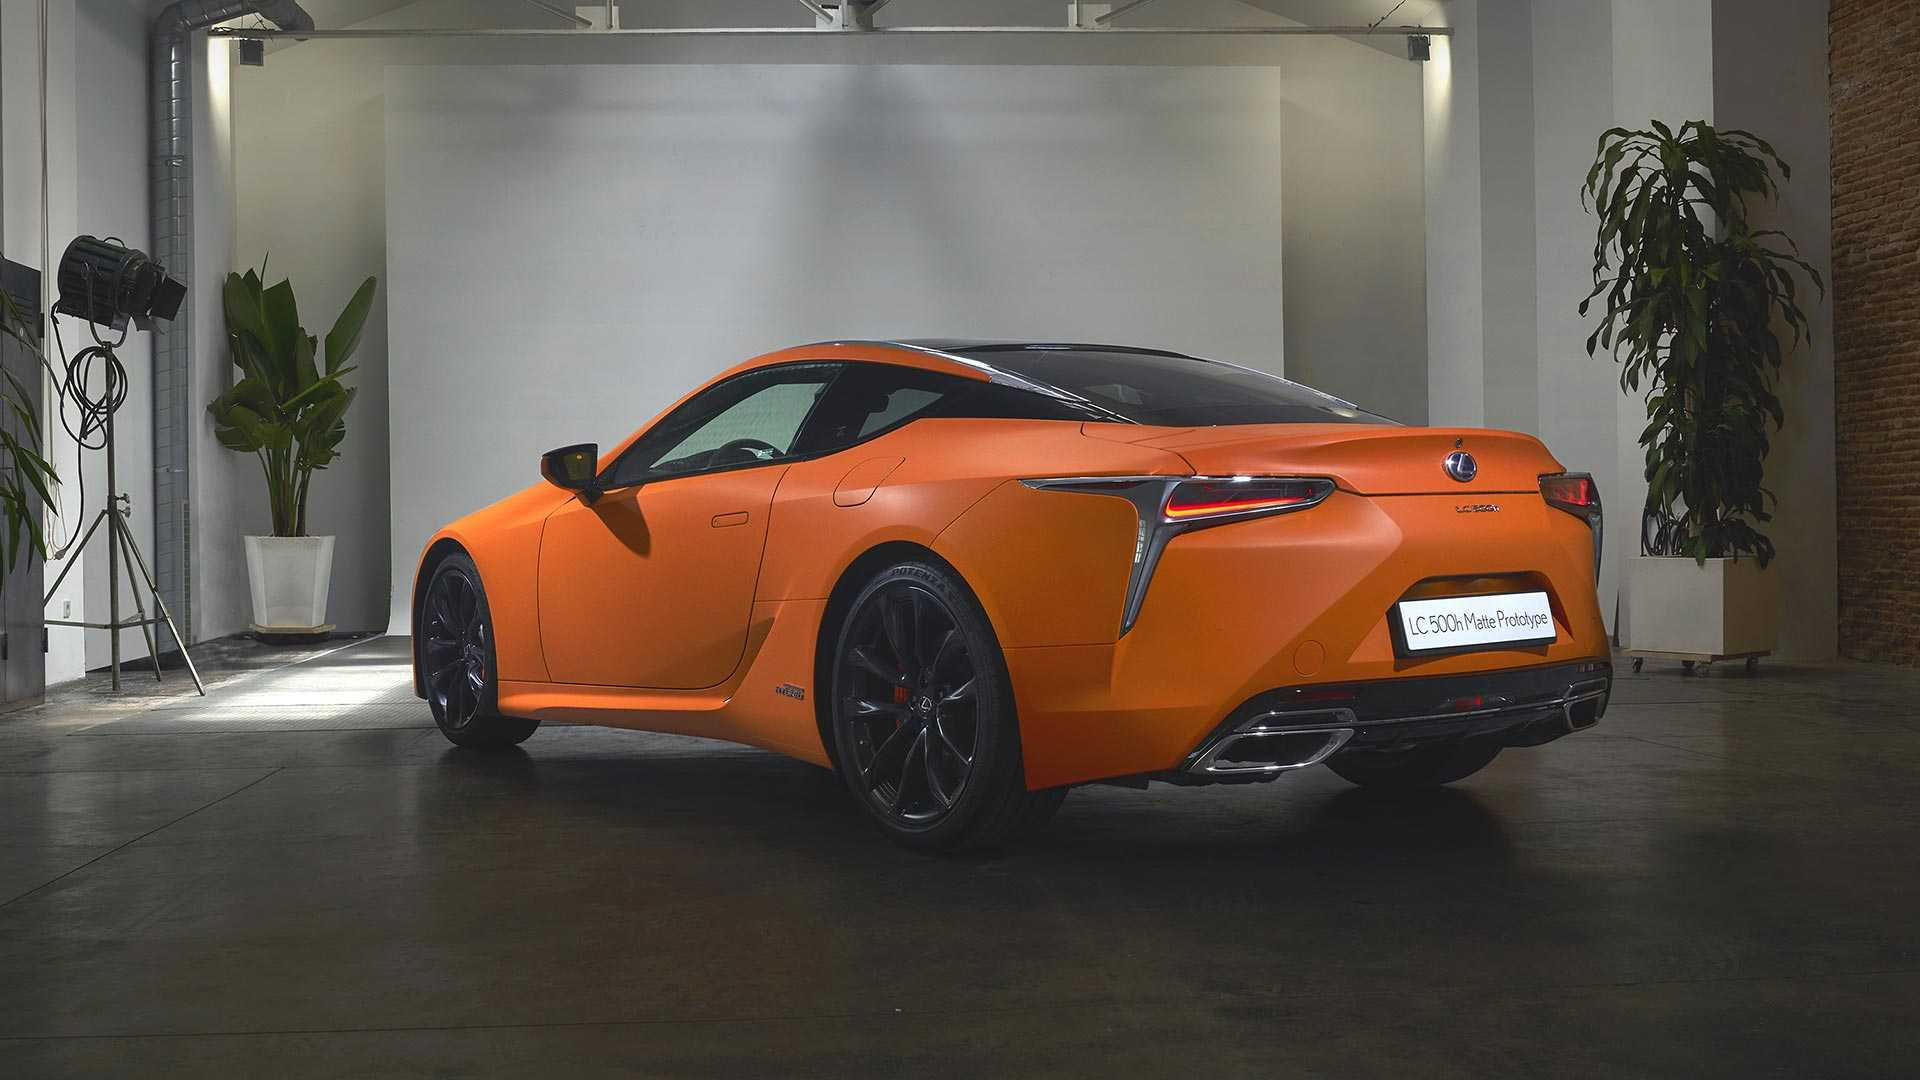 Lexus LC 500h Orange Prototype